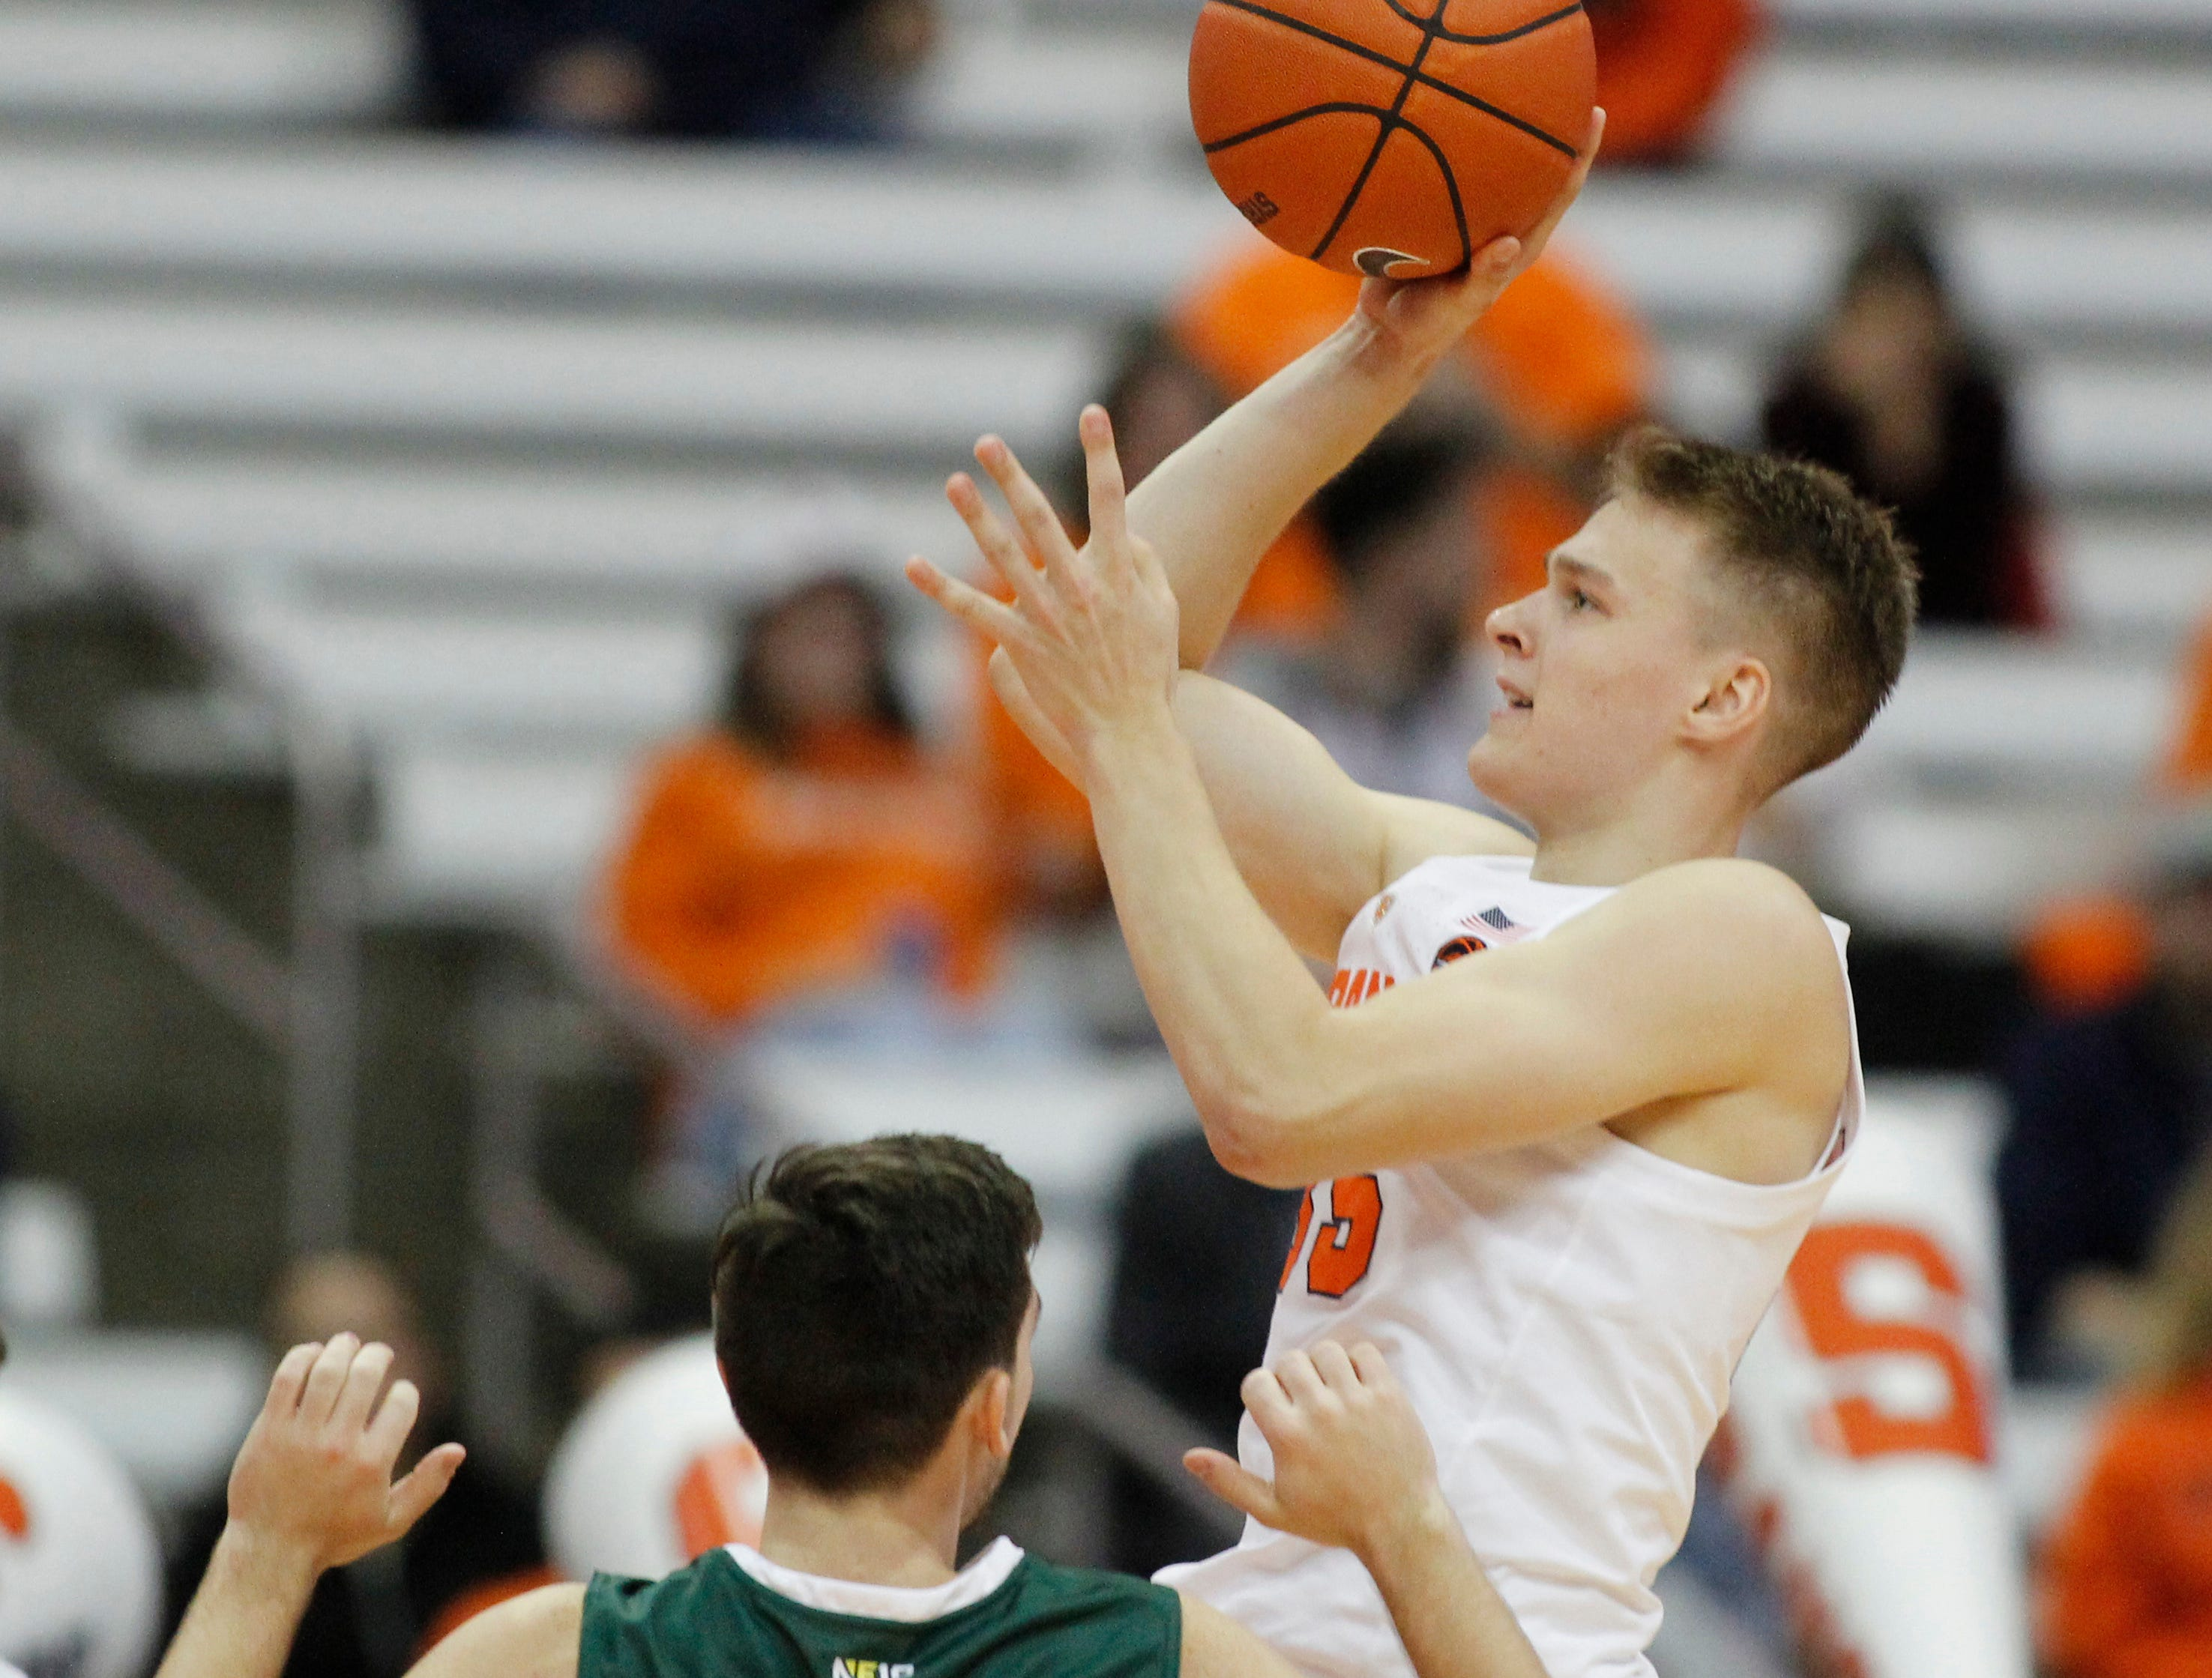 Syracuse's Buddy Boeheim, right, shoots over Le Moyne's Wyatt Self, left, during the second half of a preseason NCAA college basketball game in Syracuse, N.Y., Wednesday, Oct. 31, 2018. Syracuse won 89-52. (AP Photo/Nick Lisi)